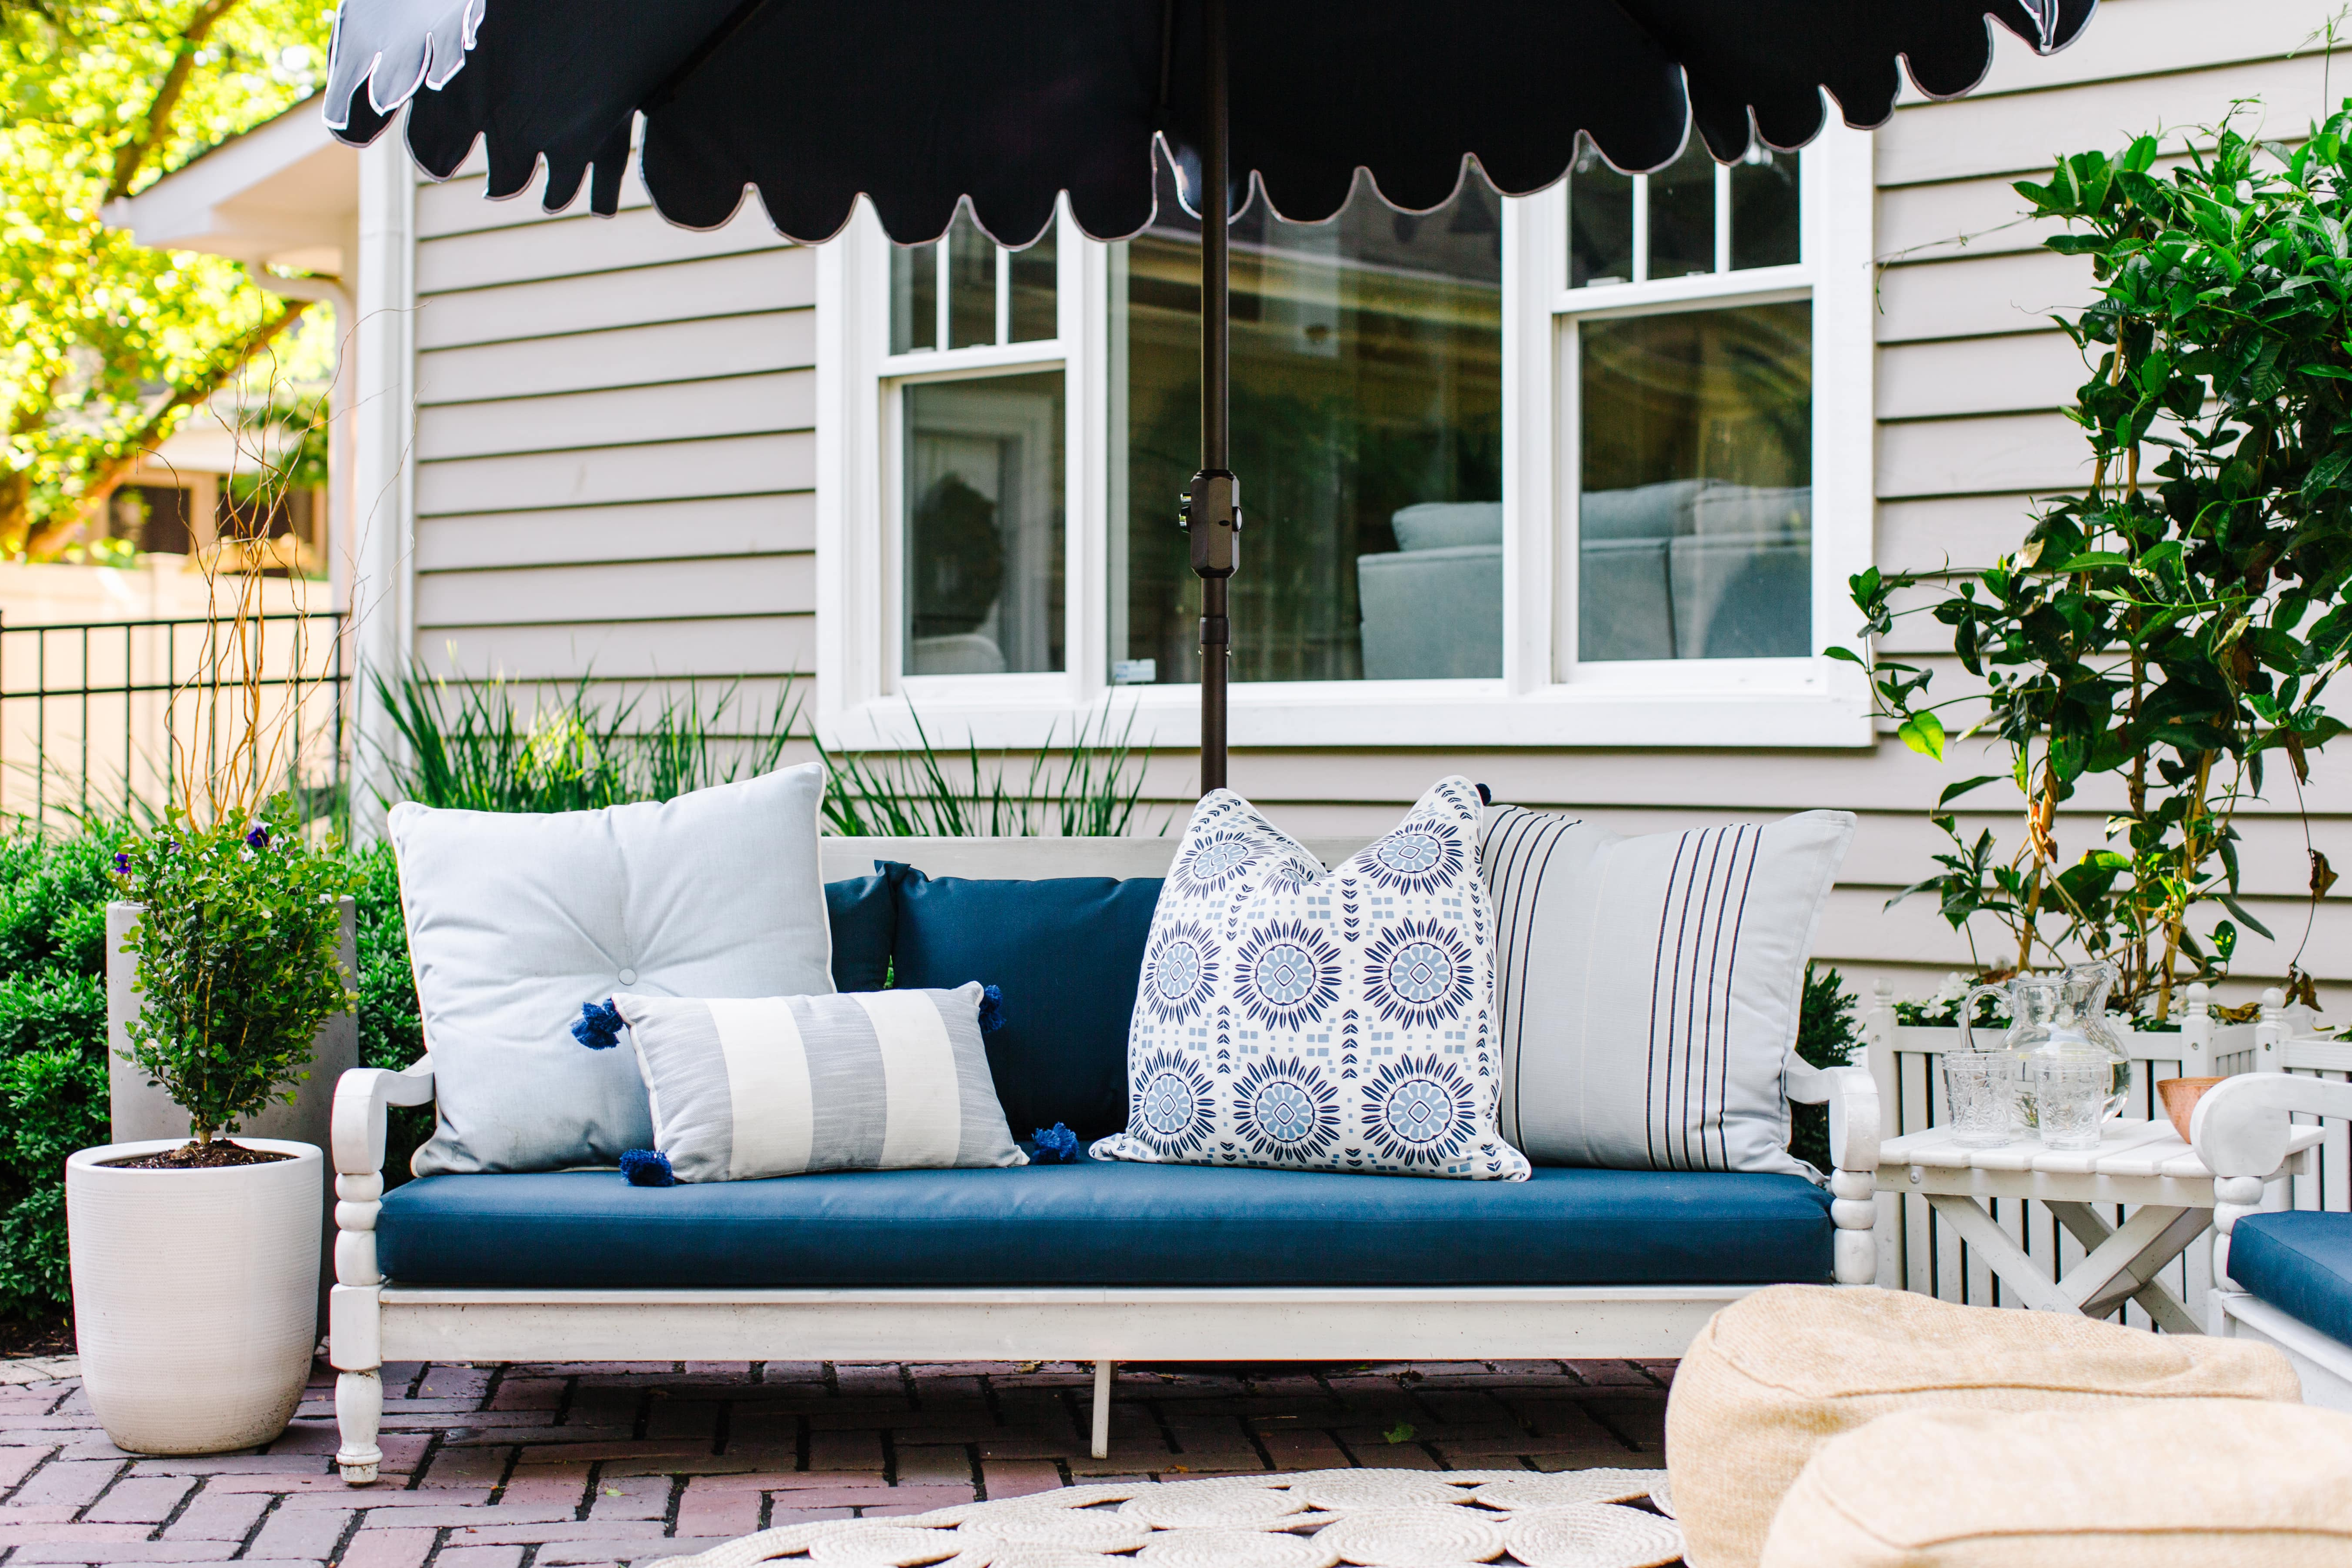 Newest Backyard Patio Update – The Art Of Living Pertaining To Roush Teak Patio Daybeds With Cushions (View 7 of 20)